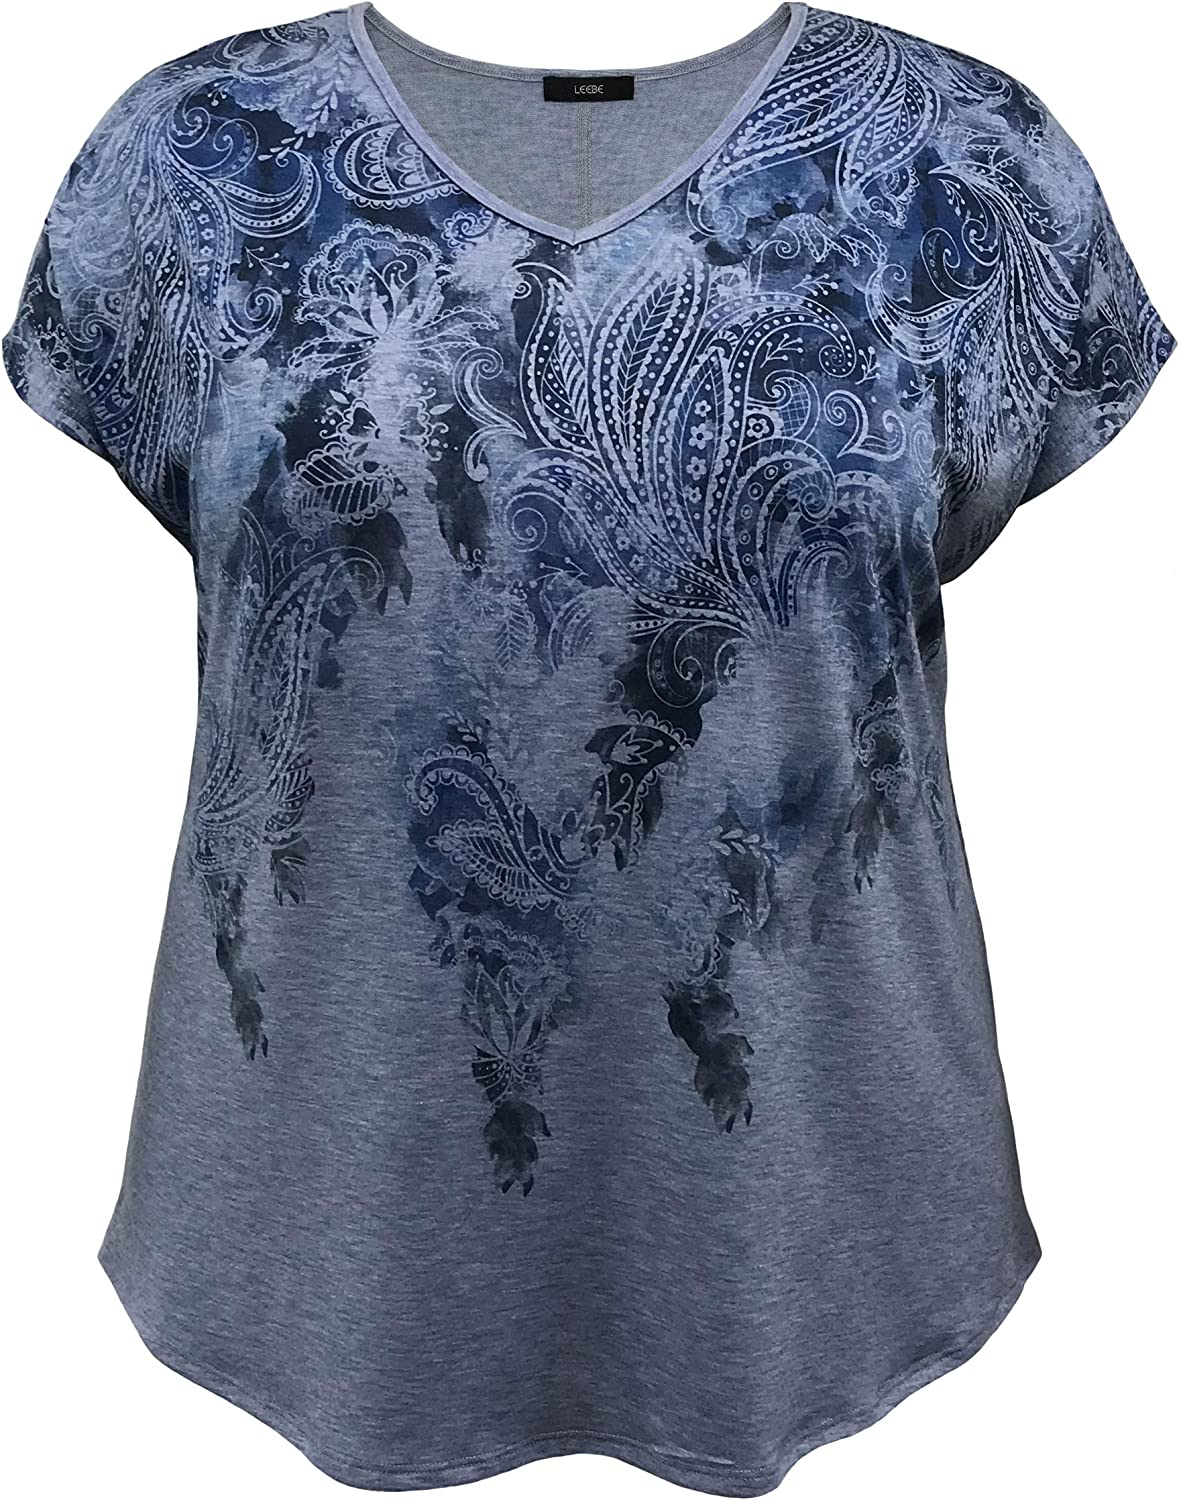 LEEBE Women and Plus Size V-Neck Dolman Short Sleeve Print Top A (Small-5X)